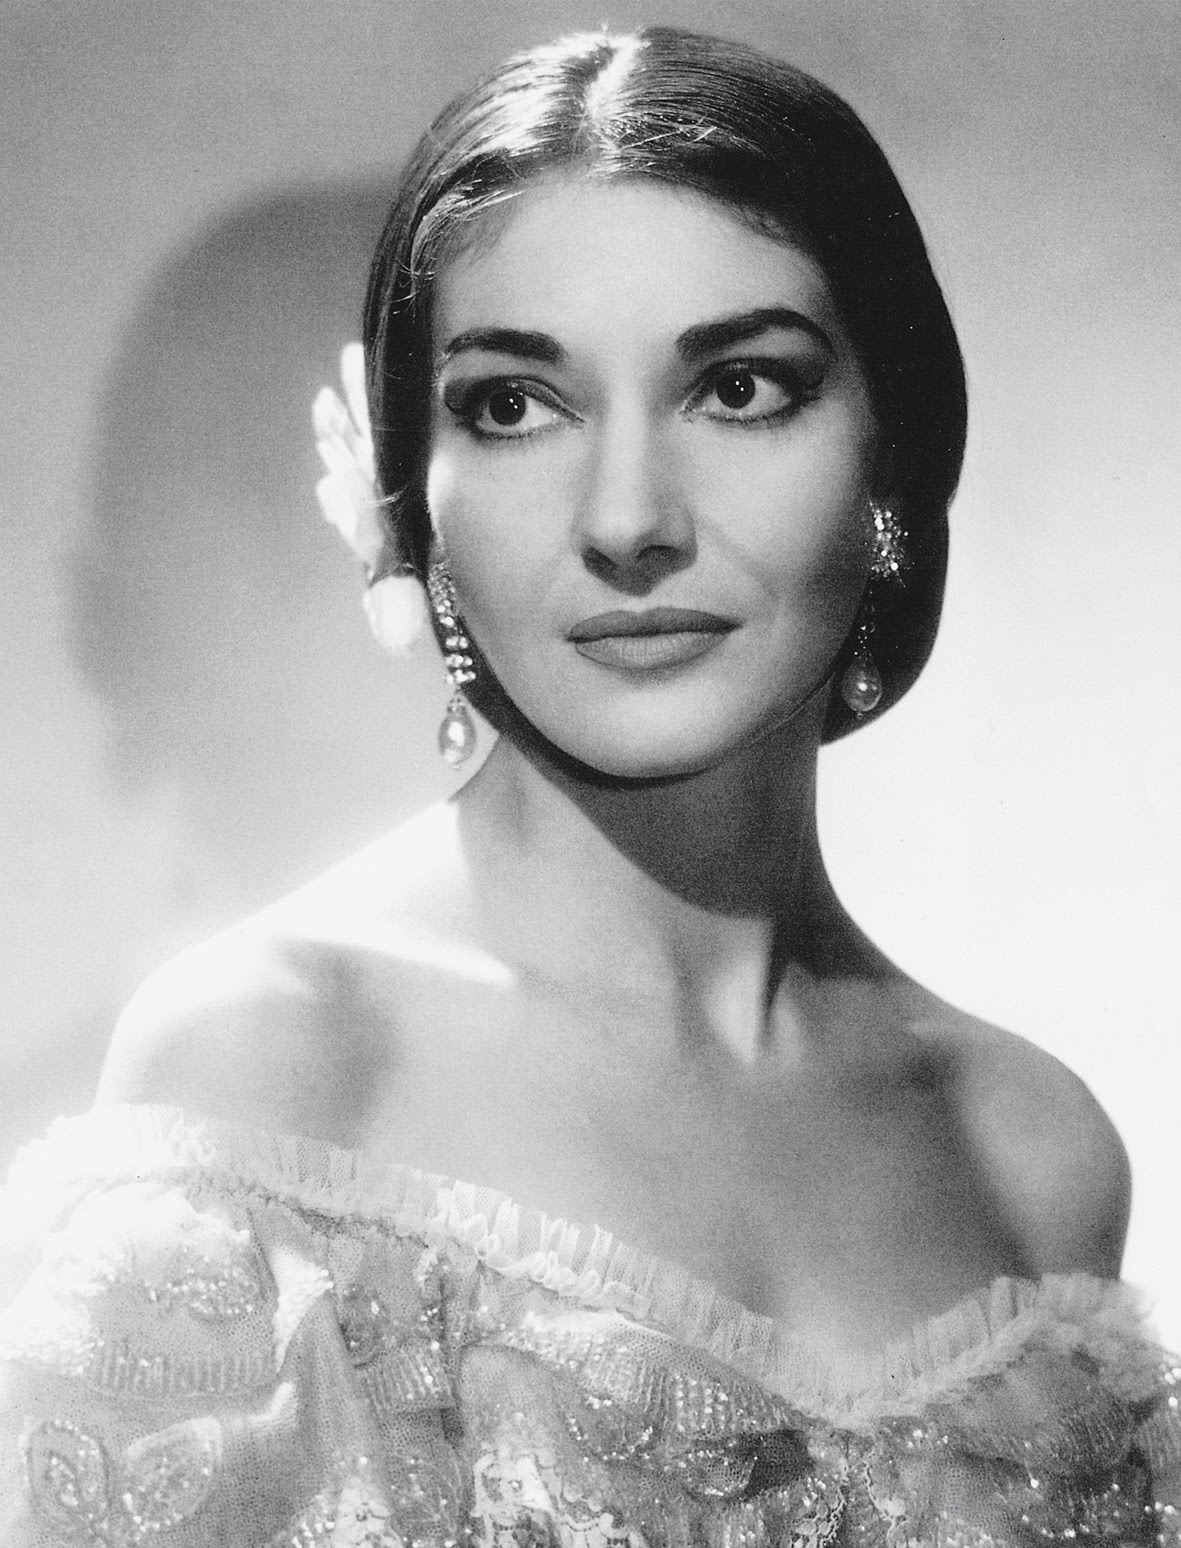 Venice  Middle and The o jays on Pinterest Maria Callas